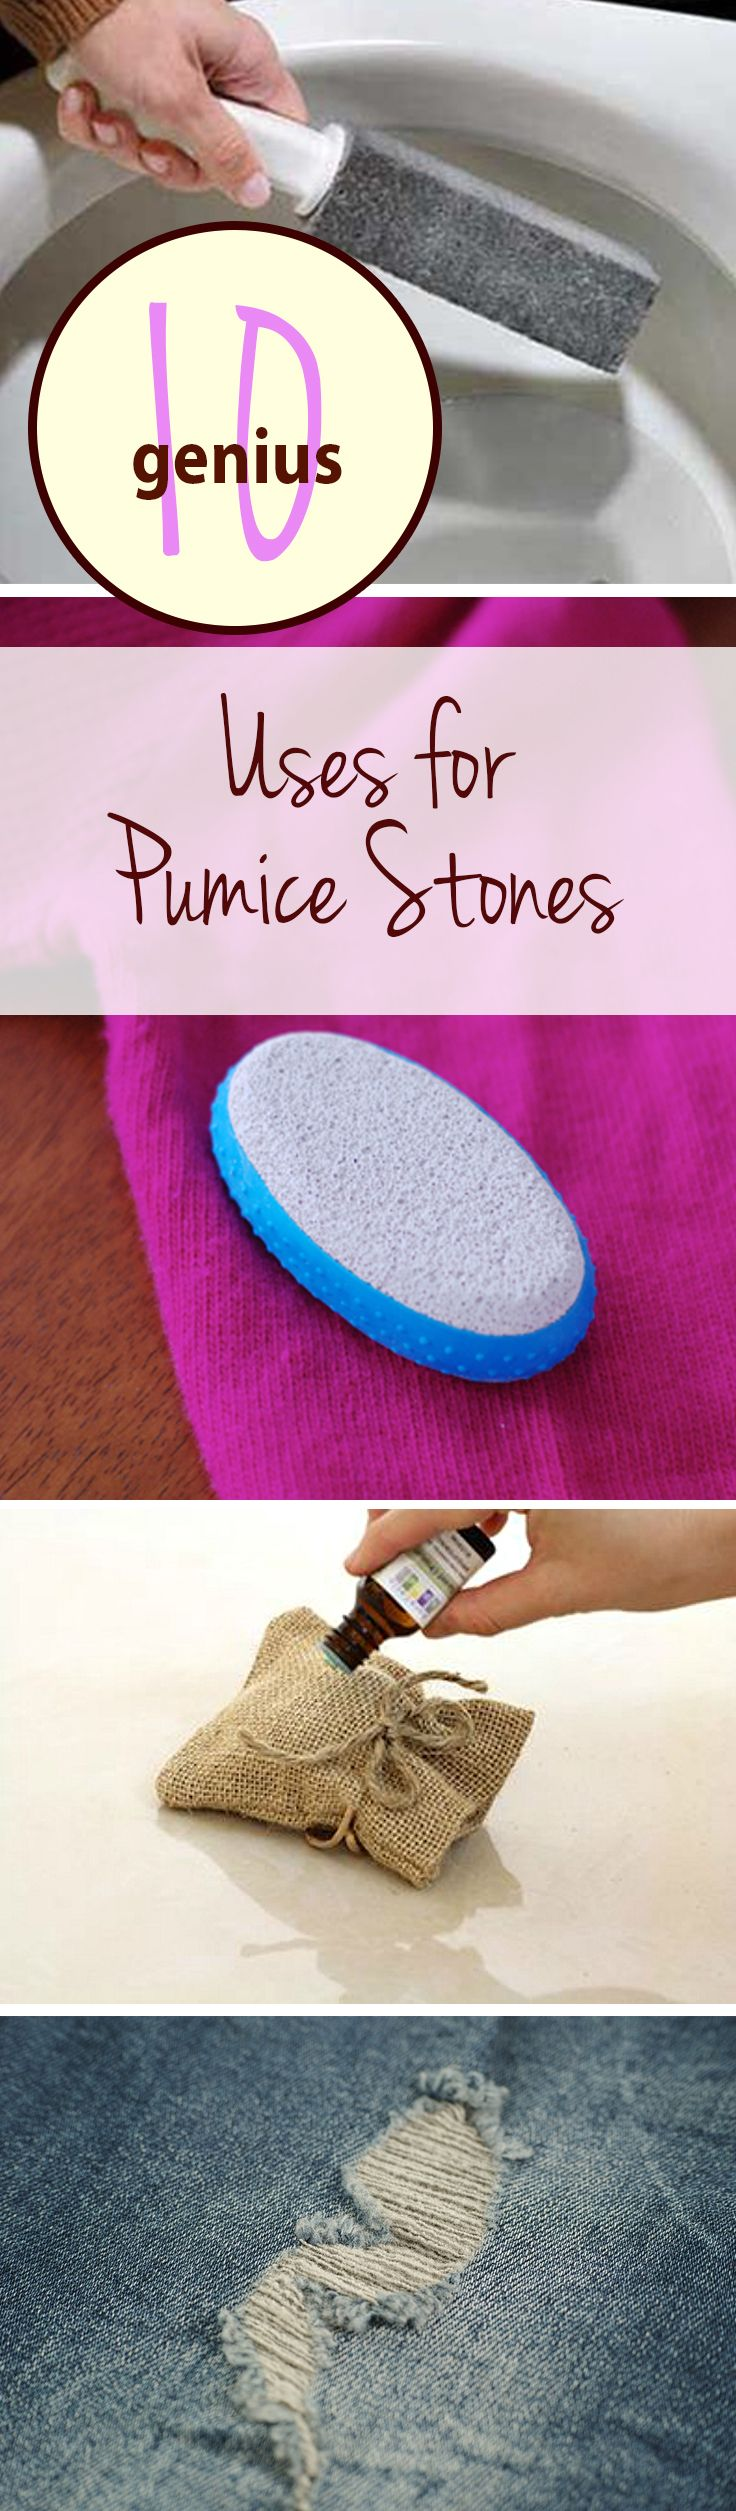 How to Use Pumice Stones, Pumice Stone Uses, Things to Do With Pumice Stones, Pumice Stone Uses, Uses for Pumice Stones, Popular Pin, Life Hacks, Health and Beauty Hacks